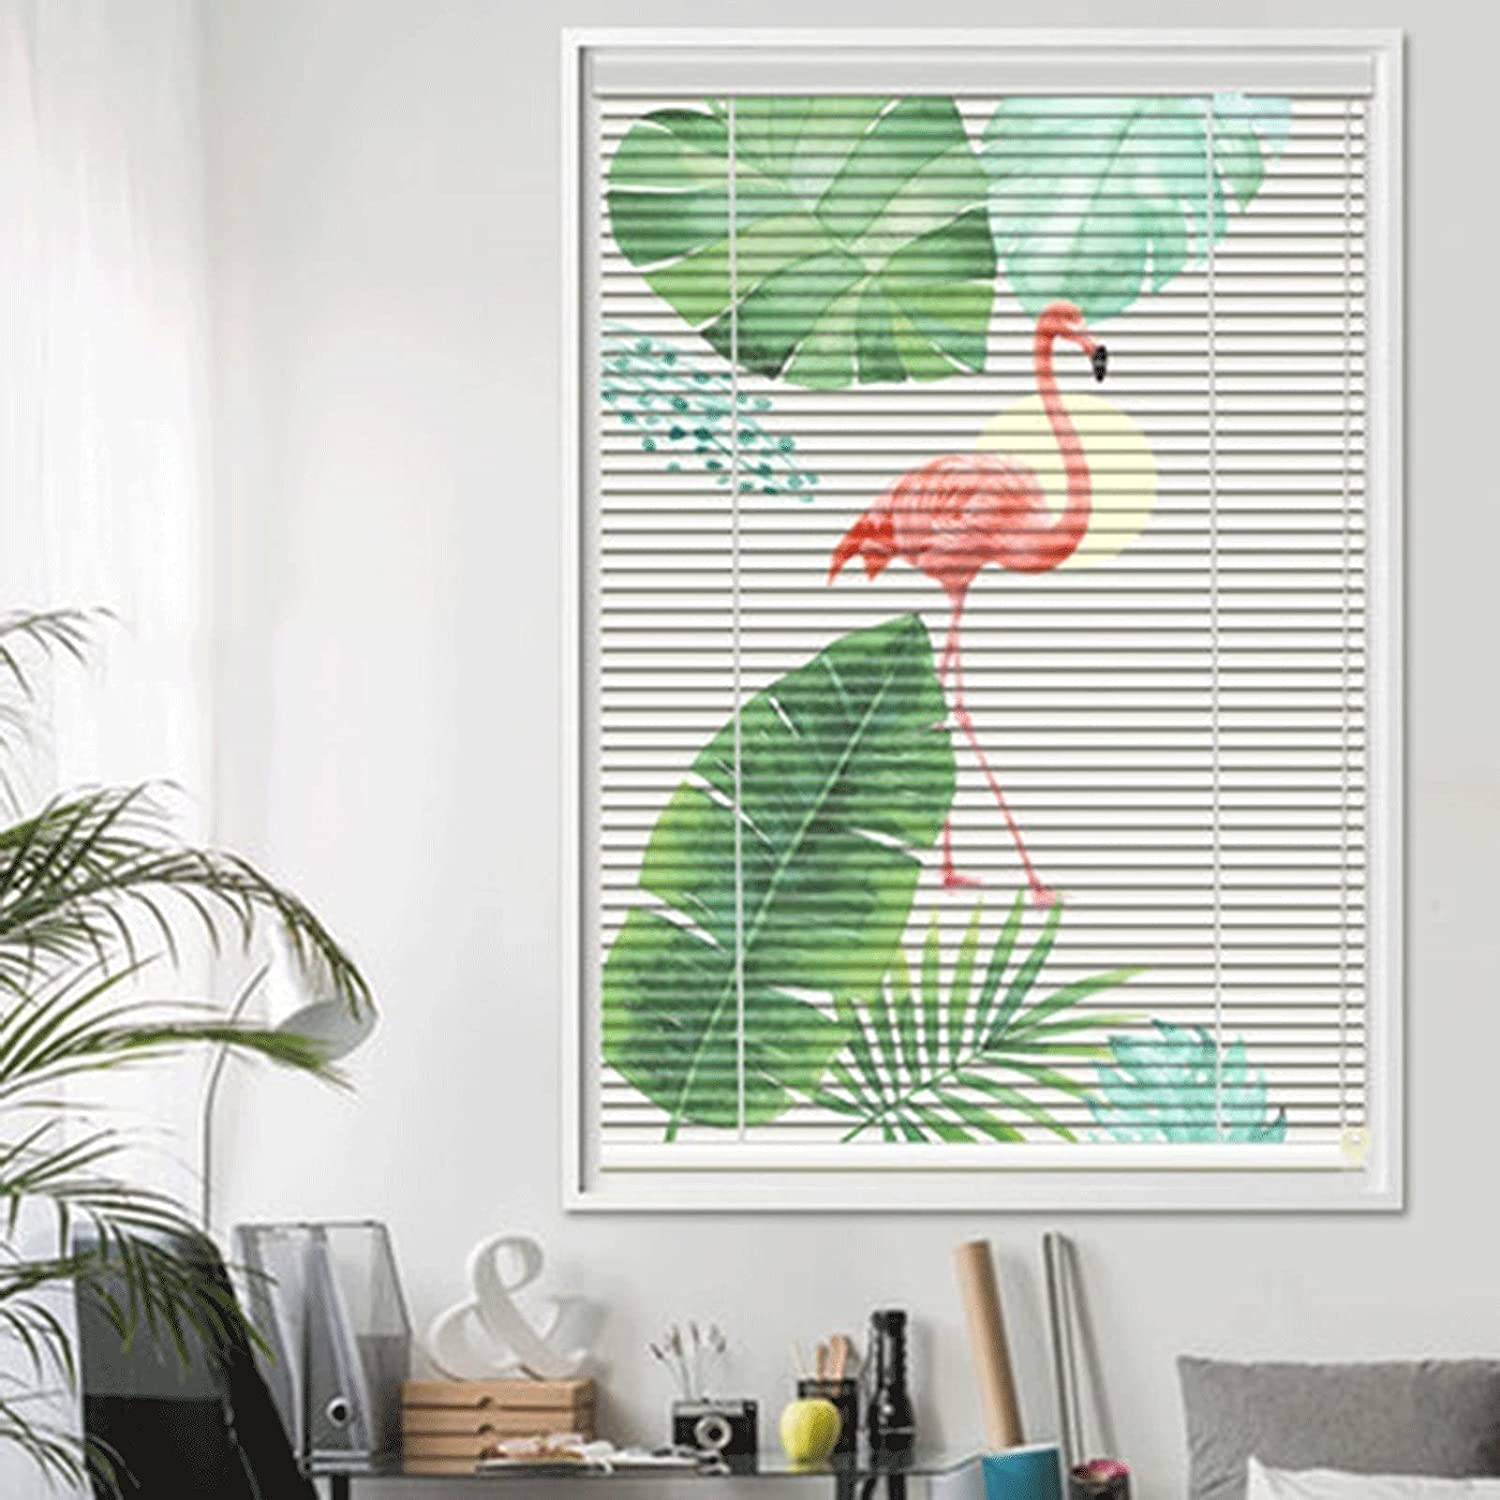 small window shade Cute Animal Blinds Household Max 61% OFF Living Safety and trust Pattern